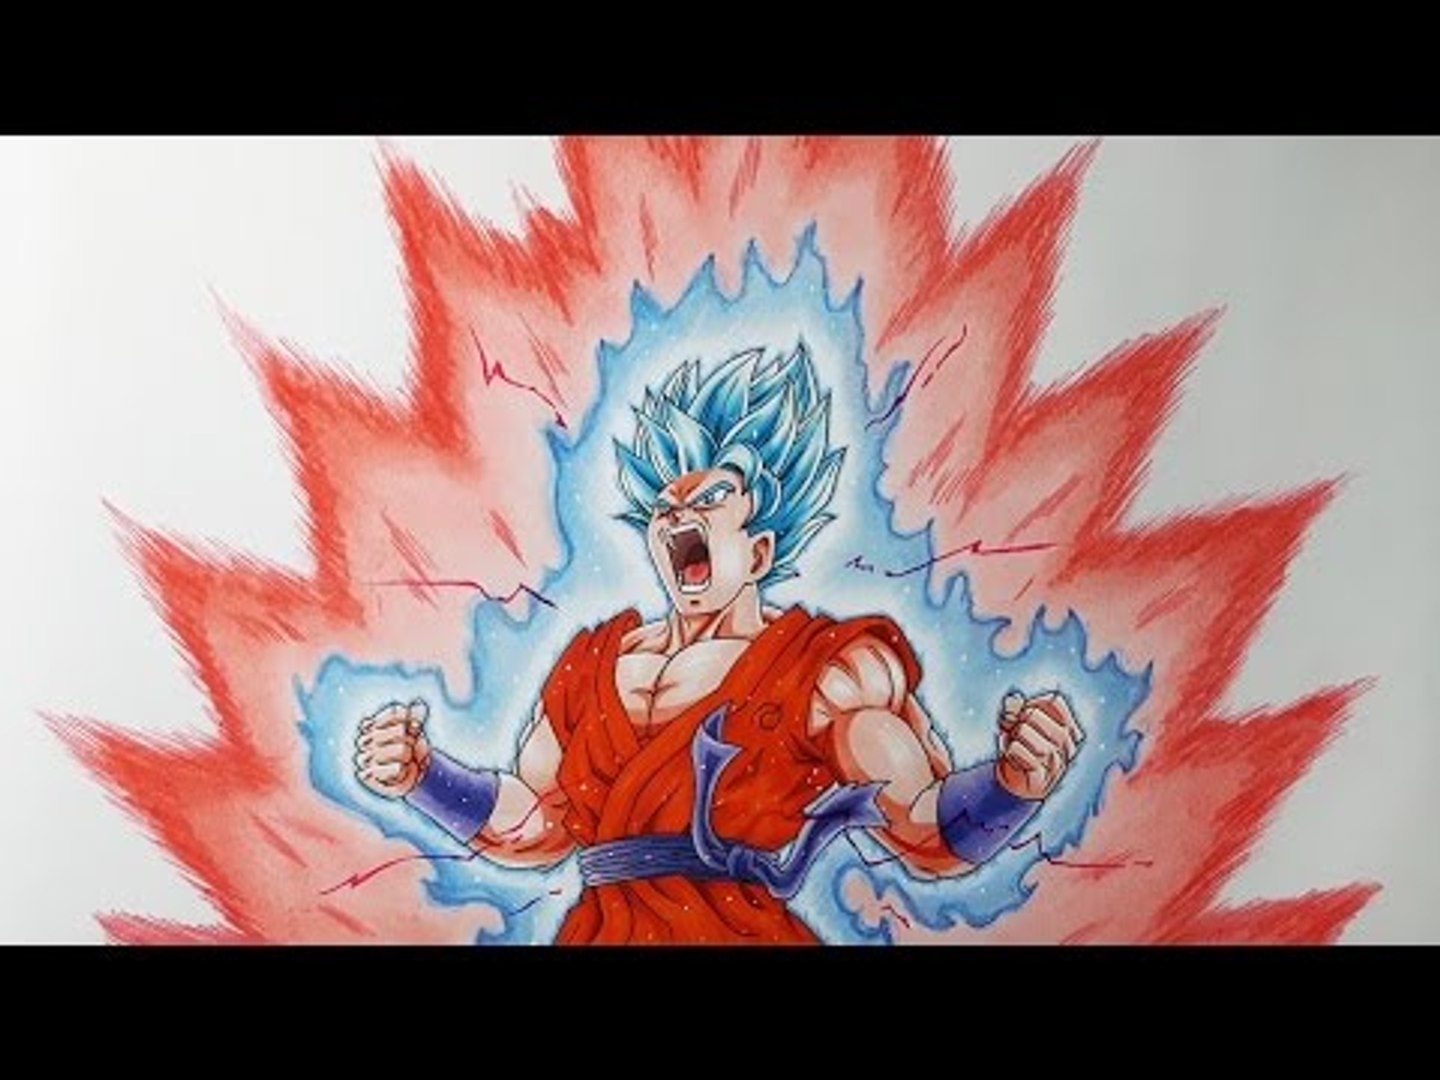 Dessiner Goku Super Saiyan Blue Kaioken X10 Video Dailymotion